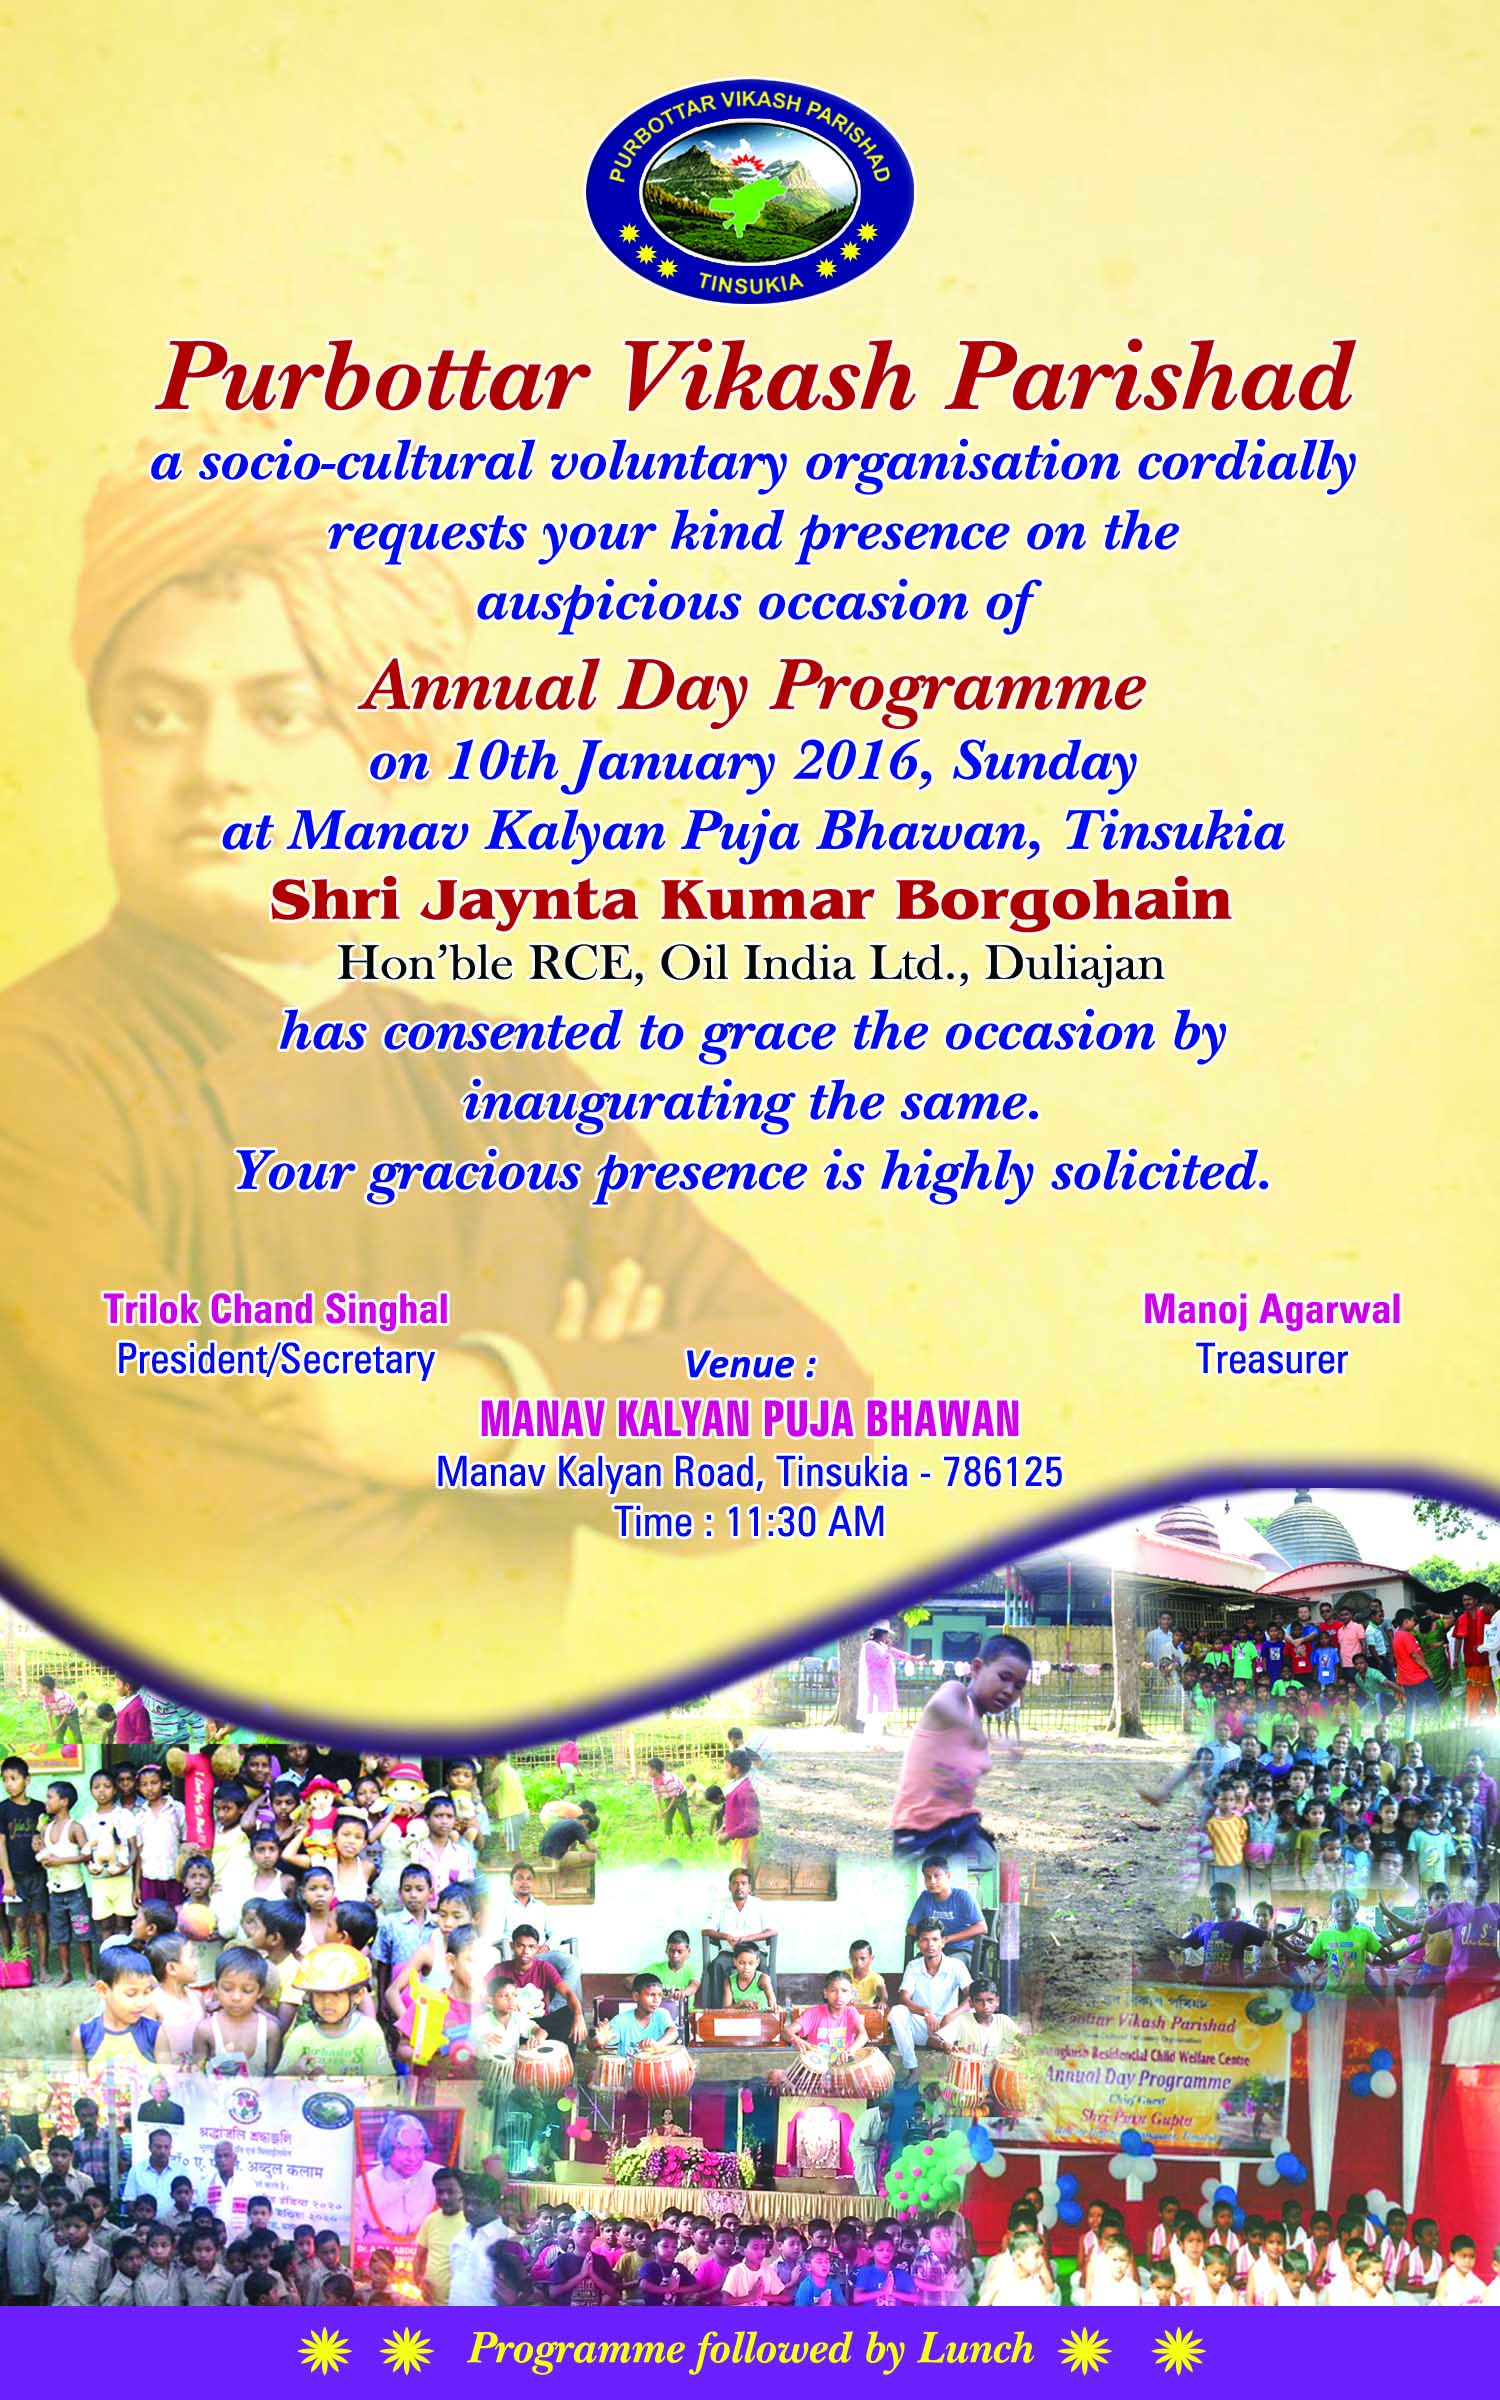 Purbottar vikash parishad invitation card for annual day programme 2016 stopboris Choice Image